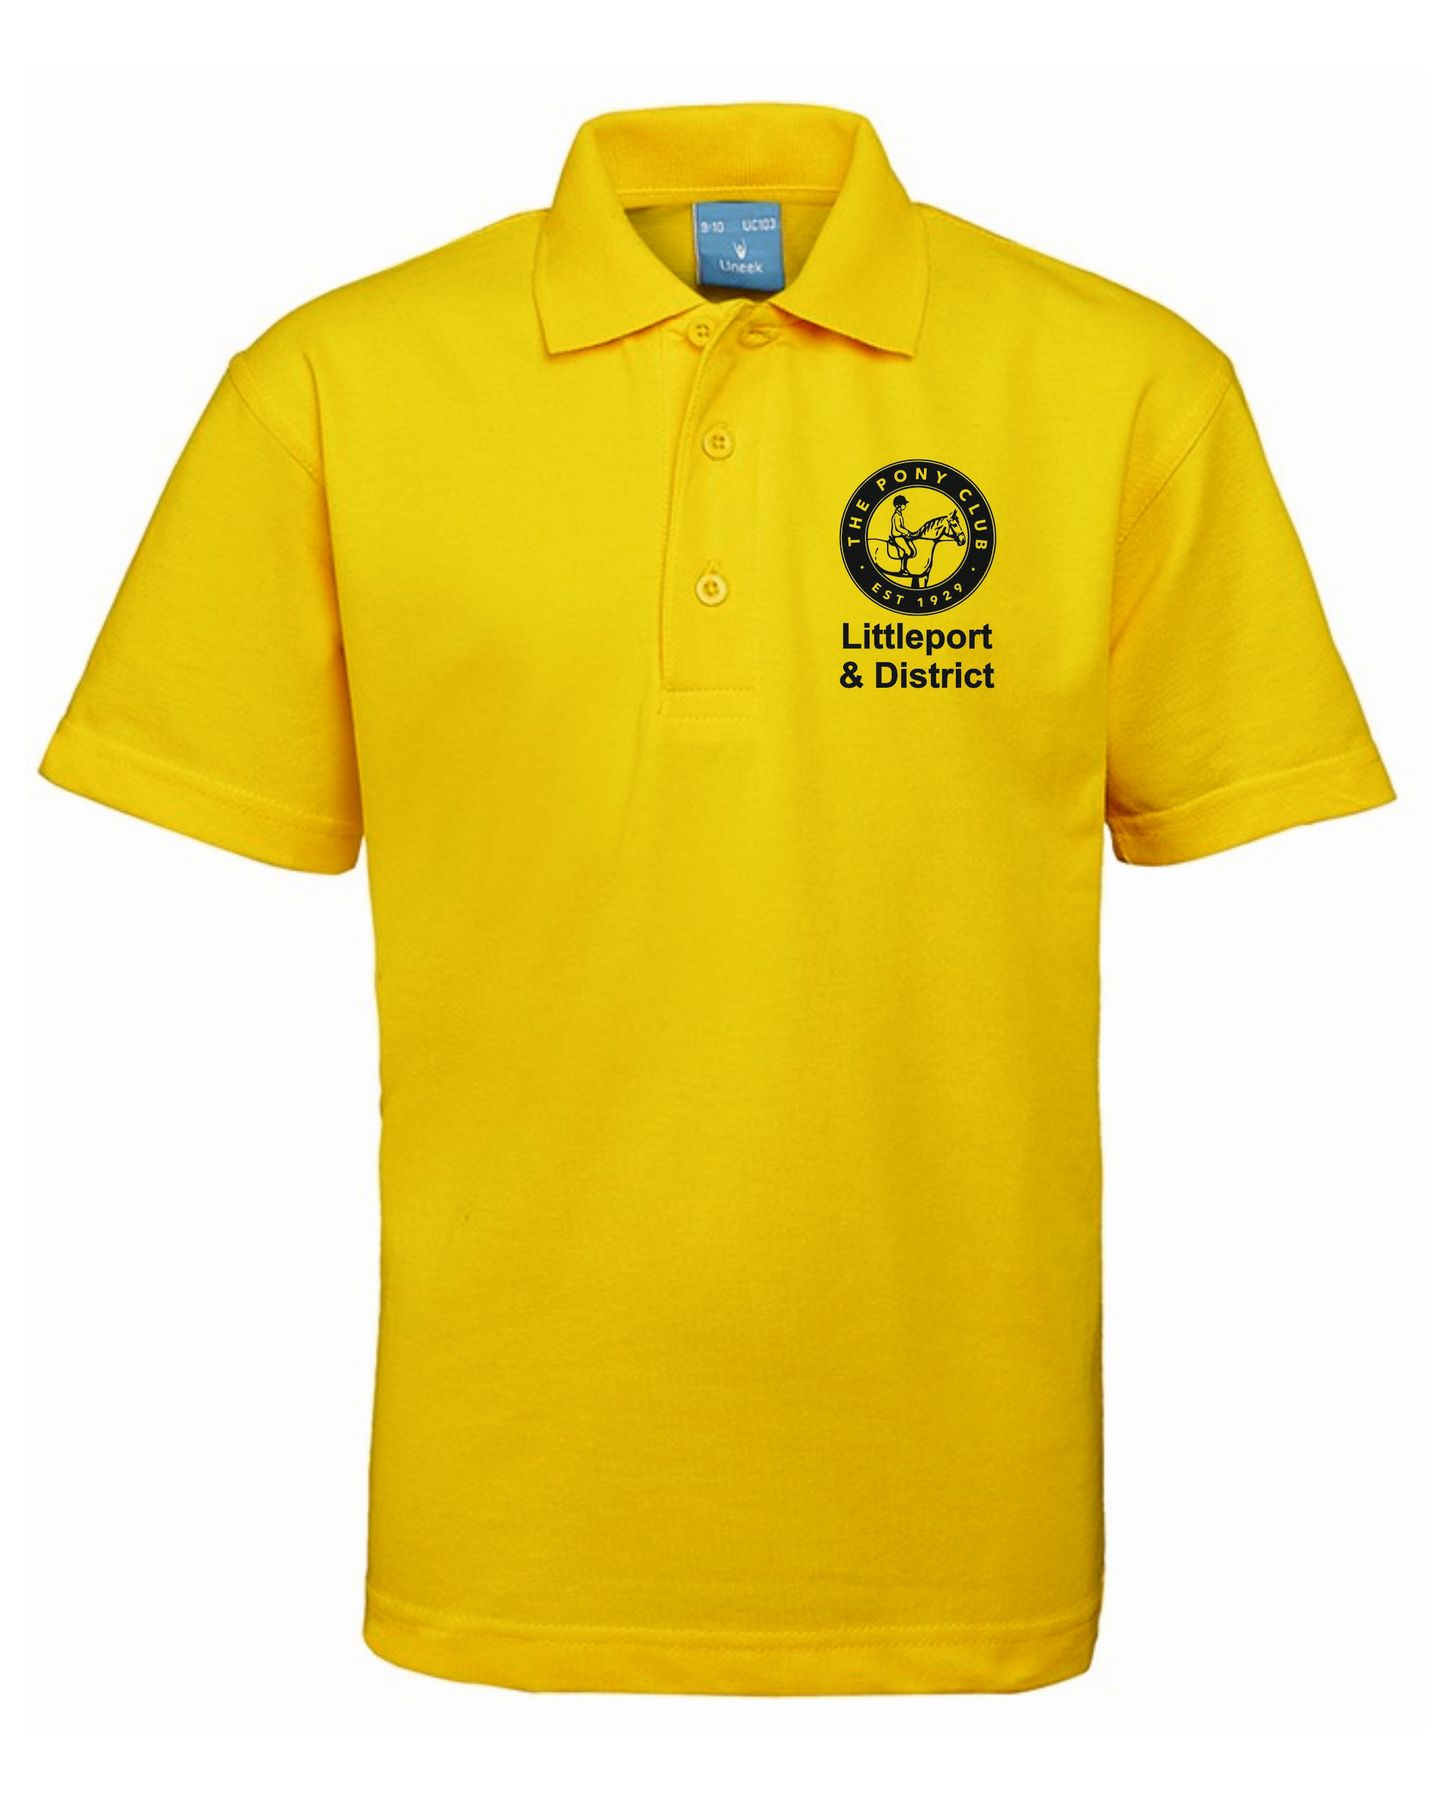 Littleport & District Pony Club – Polo Shirt Kids